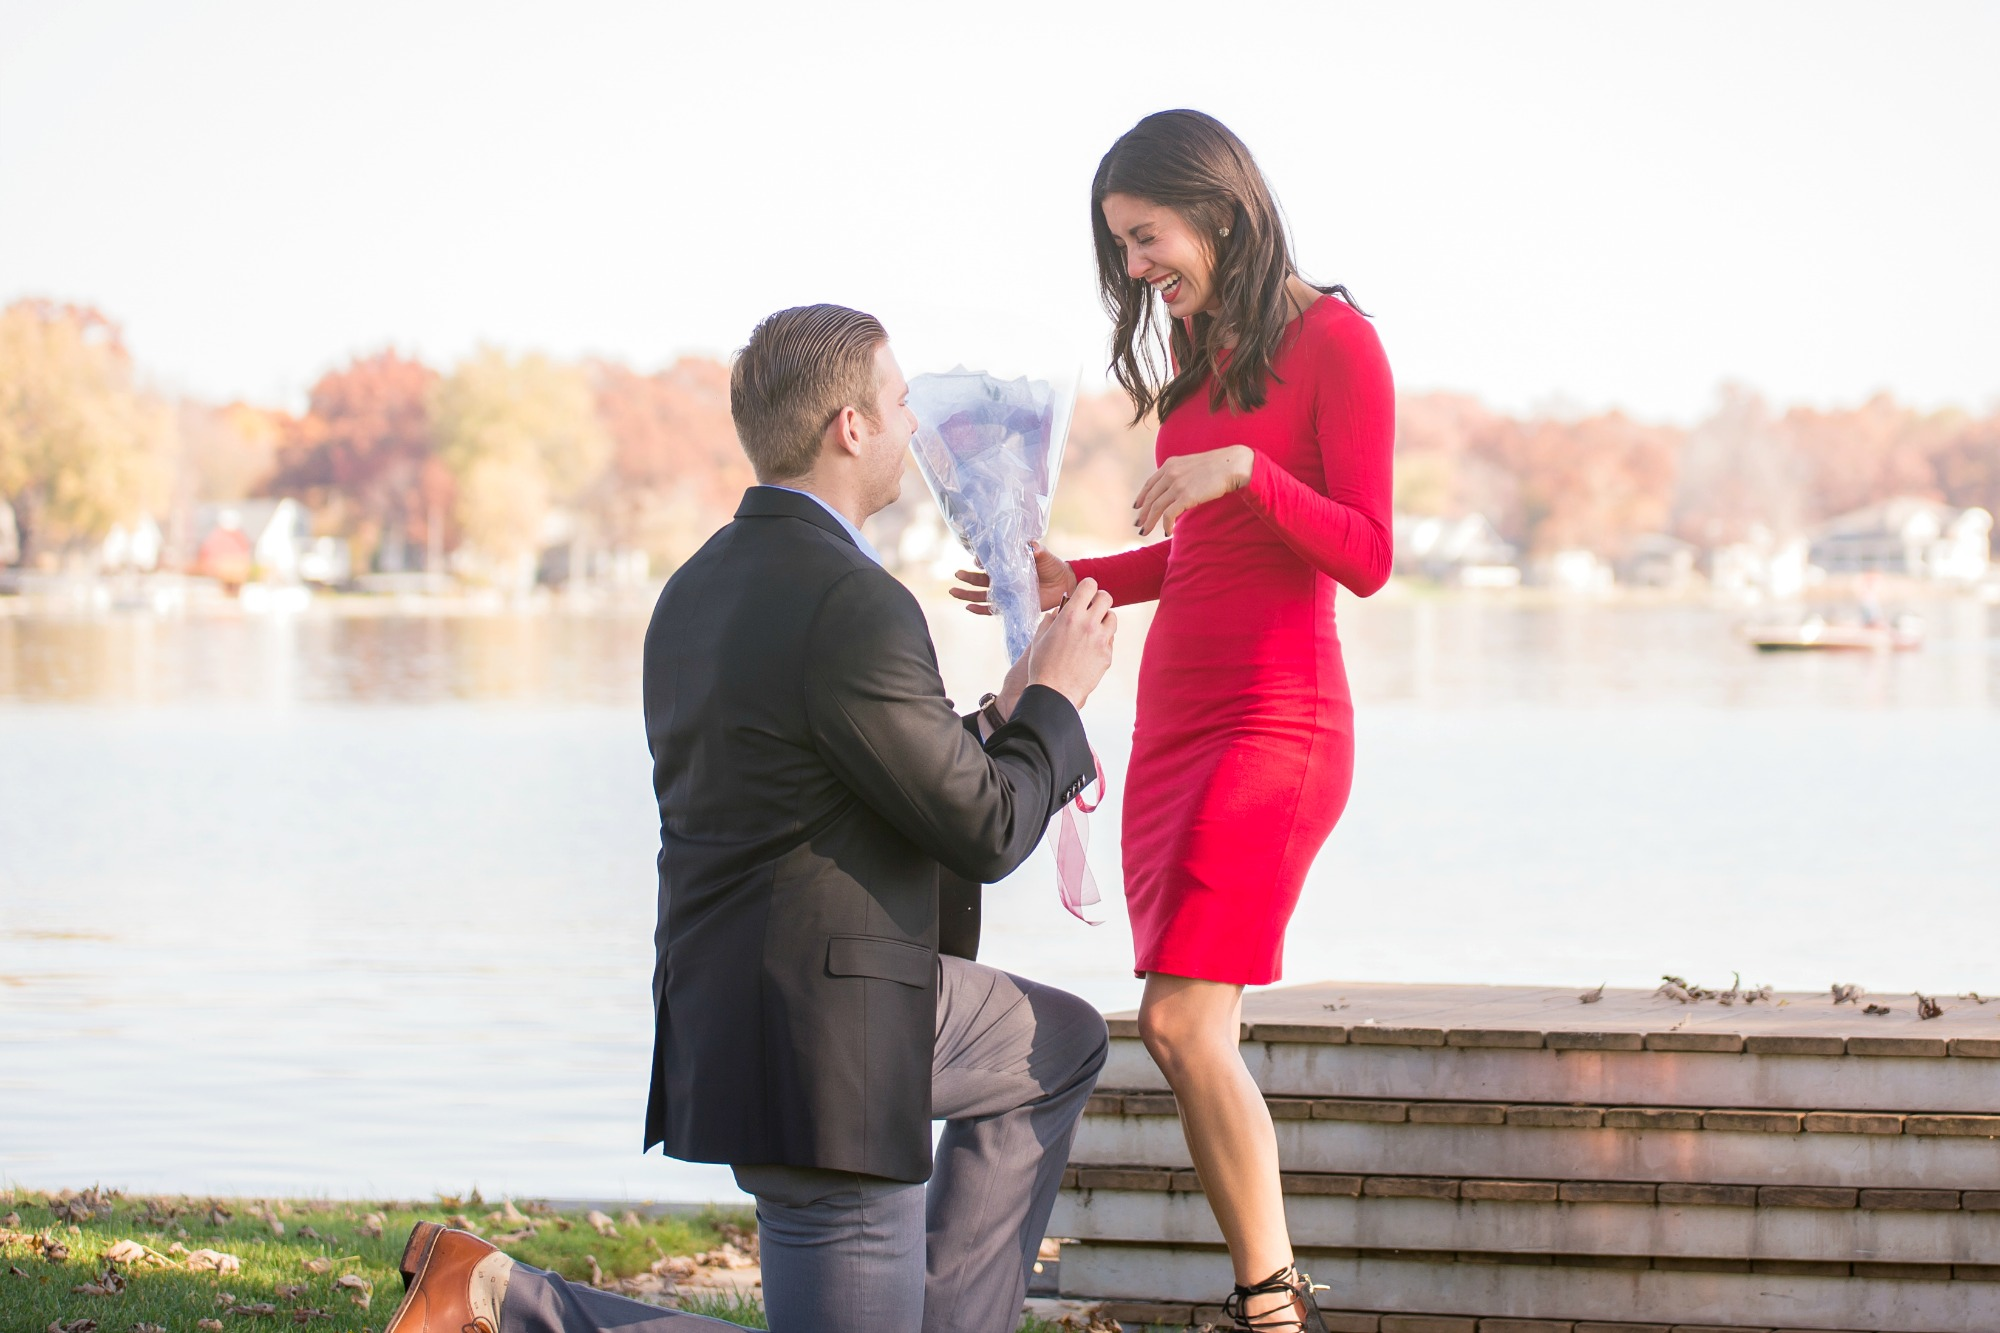 How Did Your Partner Pop The Question?